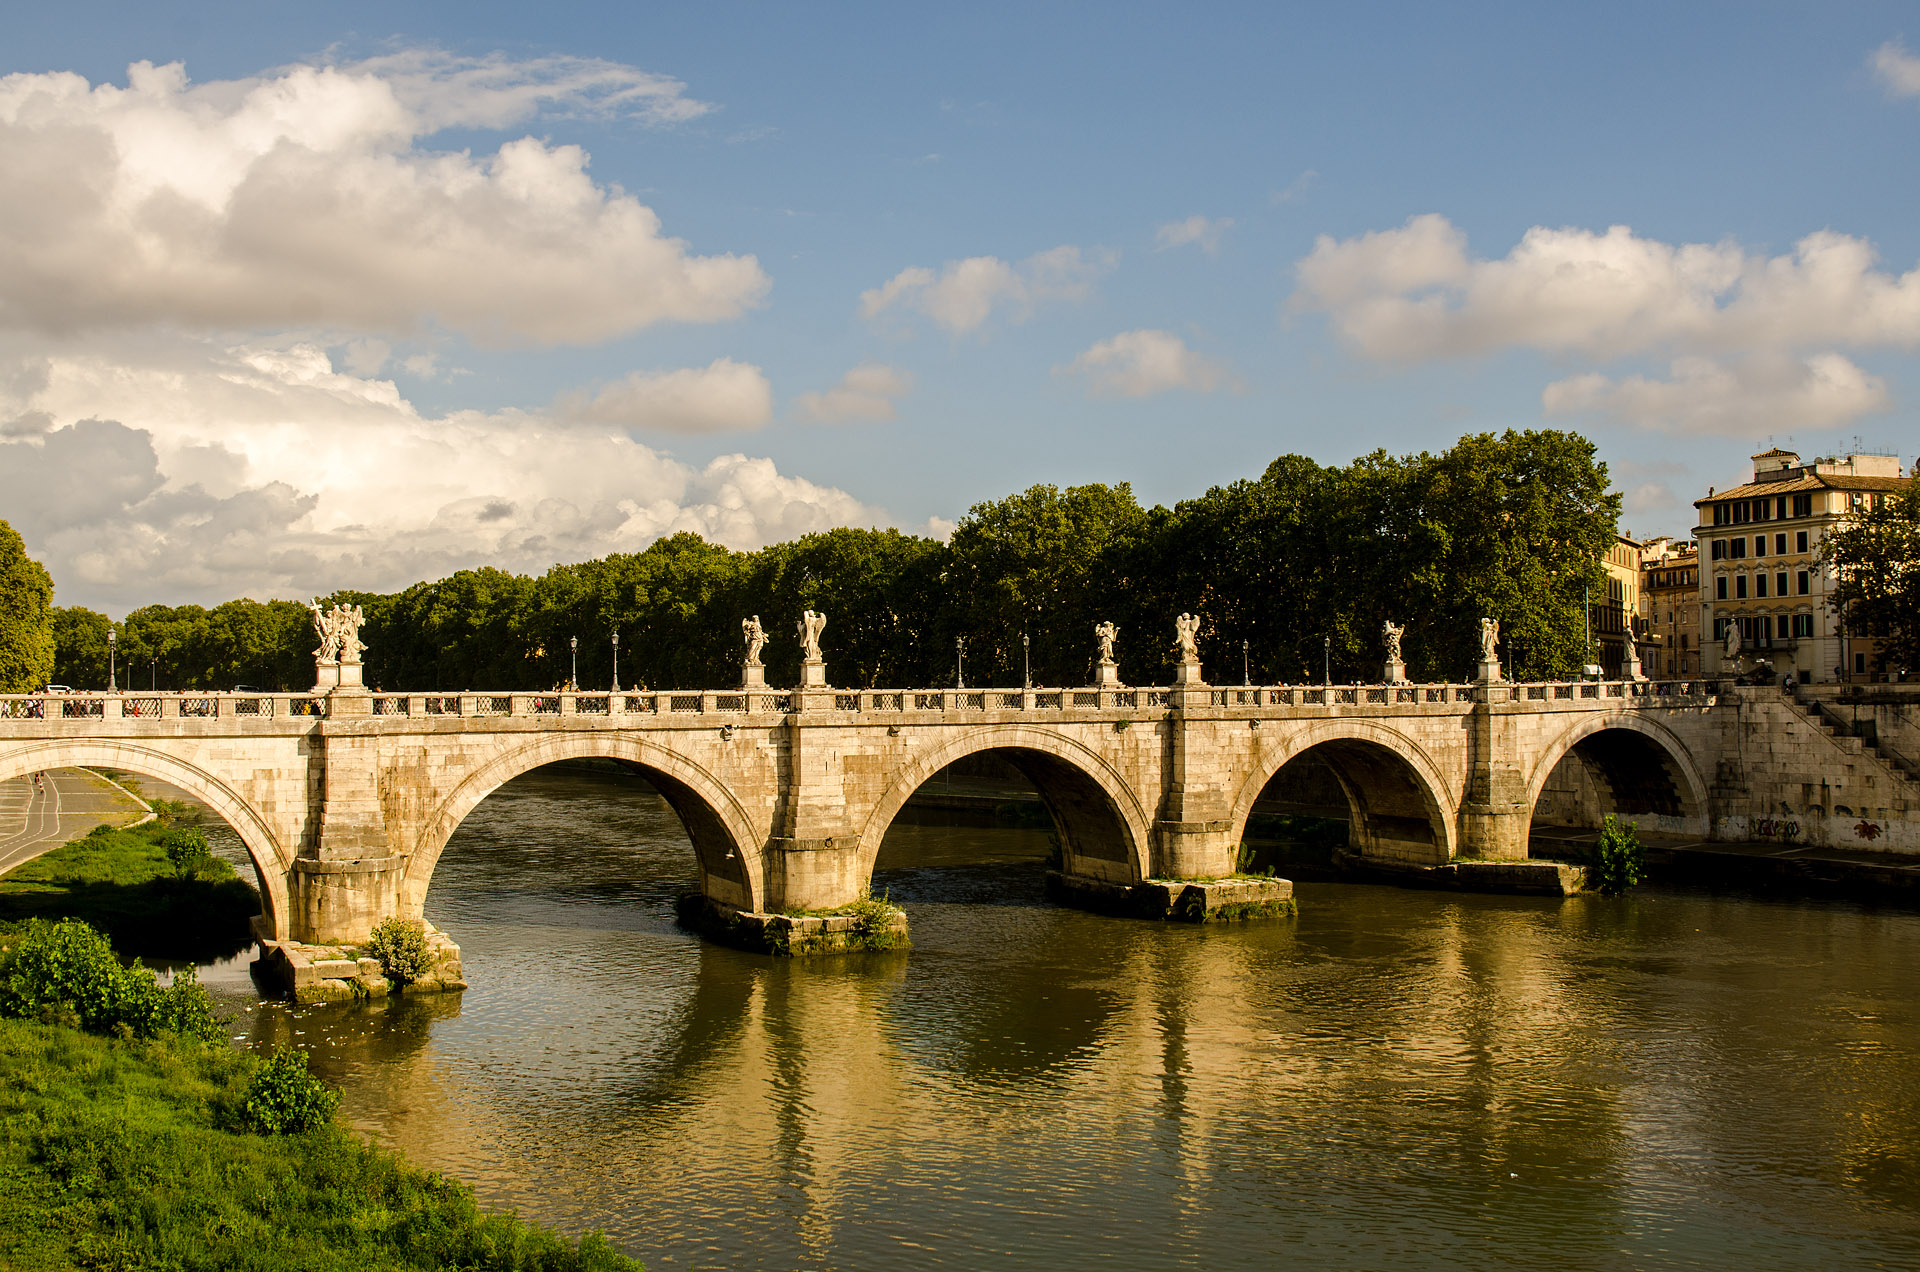 St. Angelo Bridge